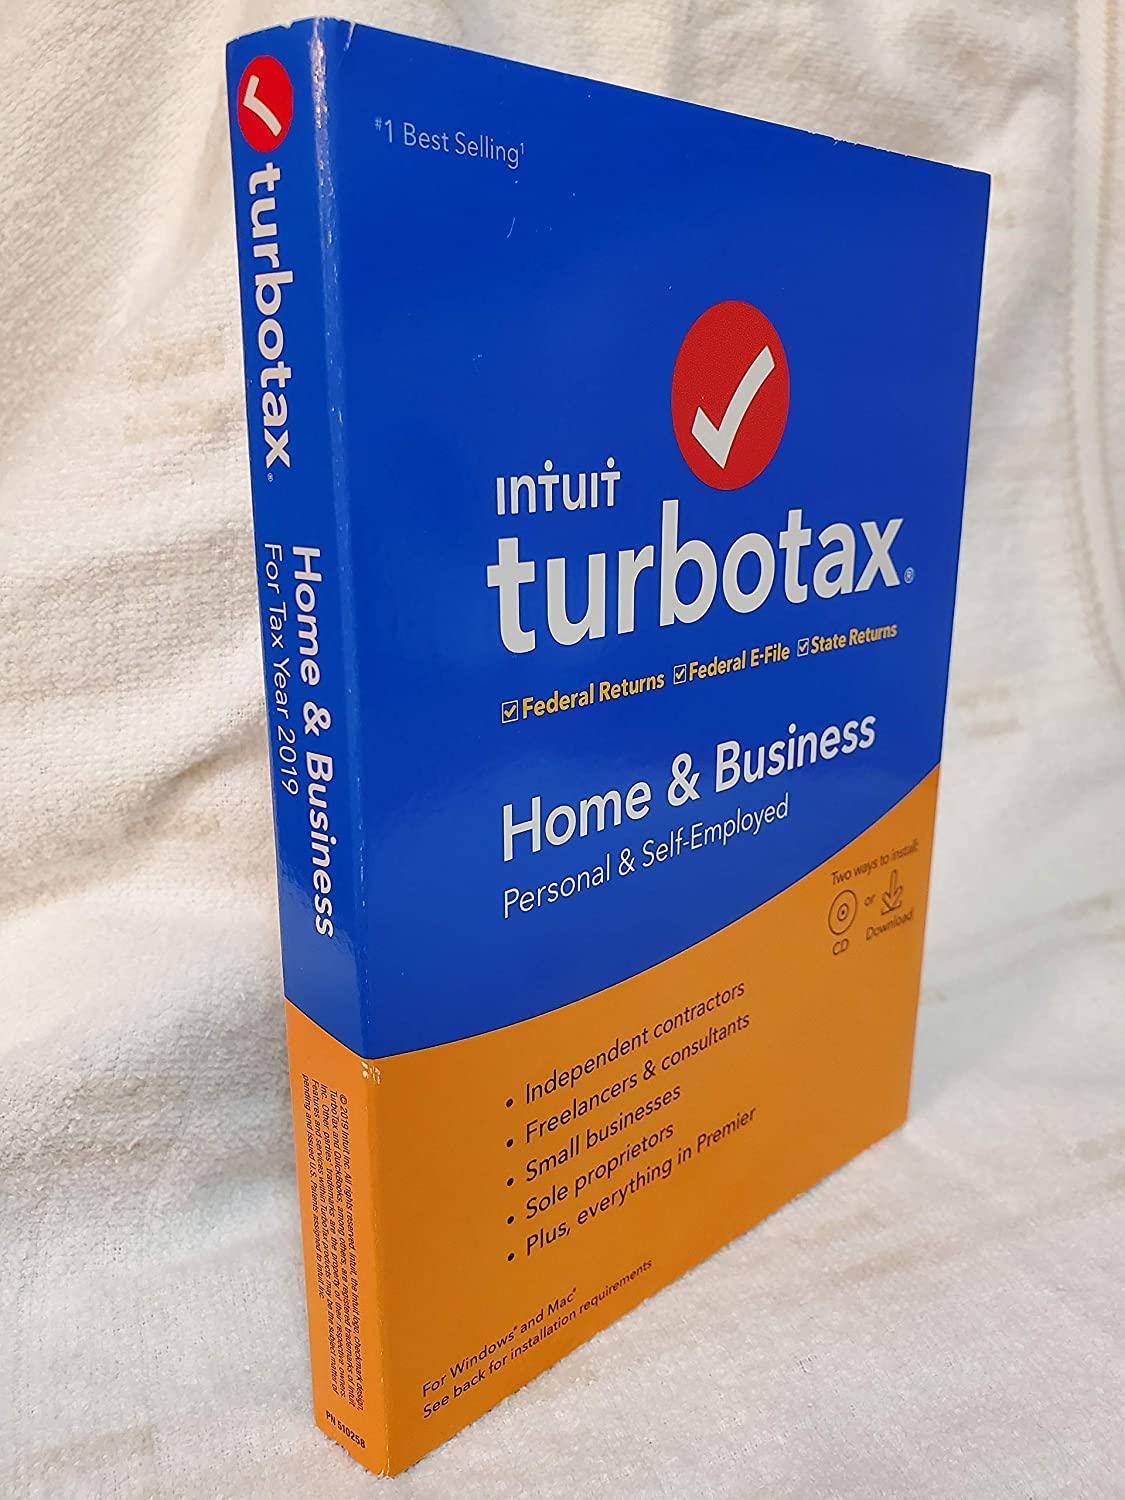 TurboTax 2019 Home & Business Software CD [PC and Mac] [Old Version]